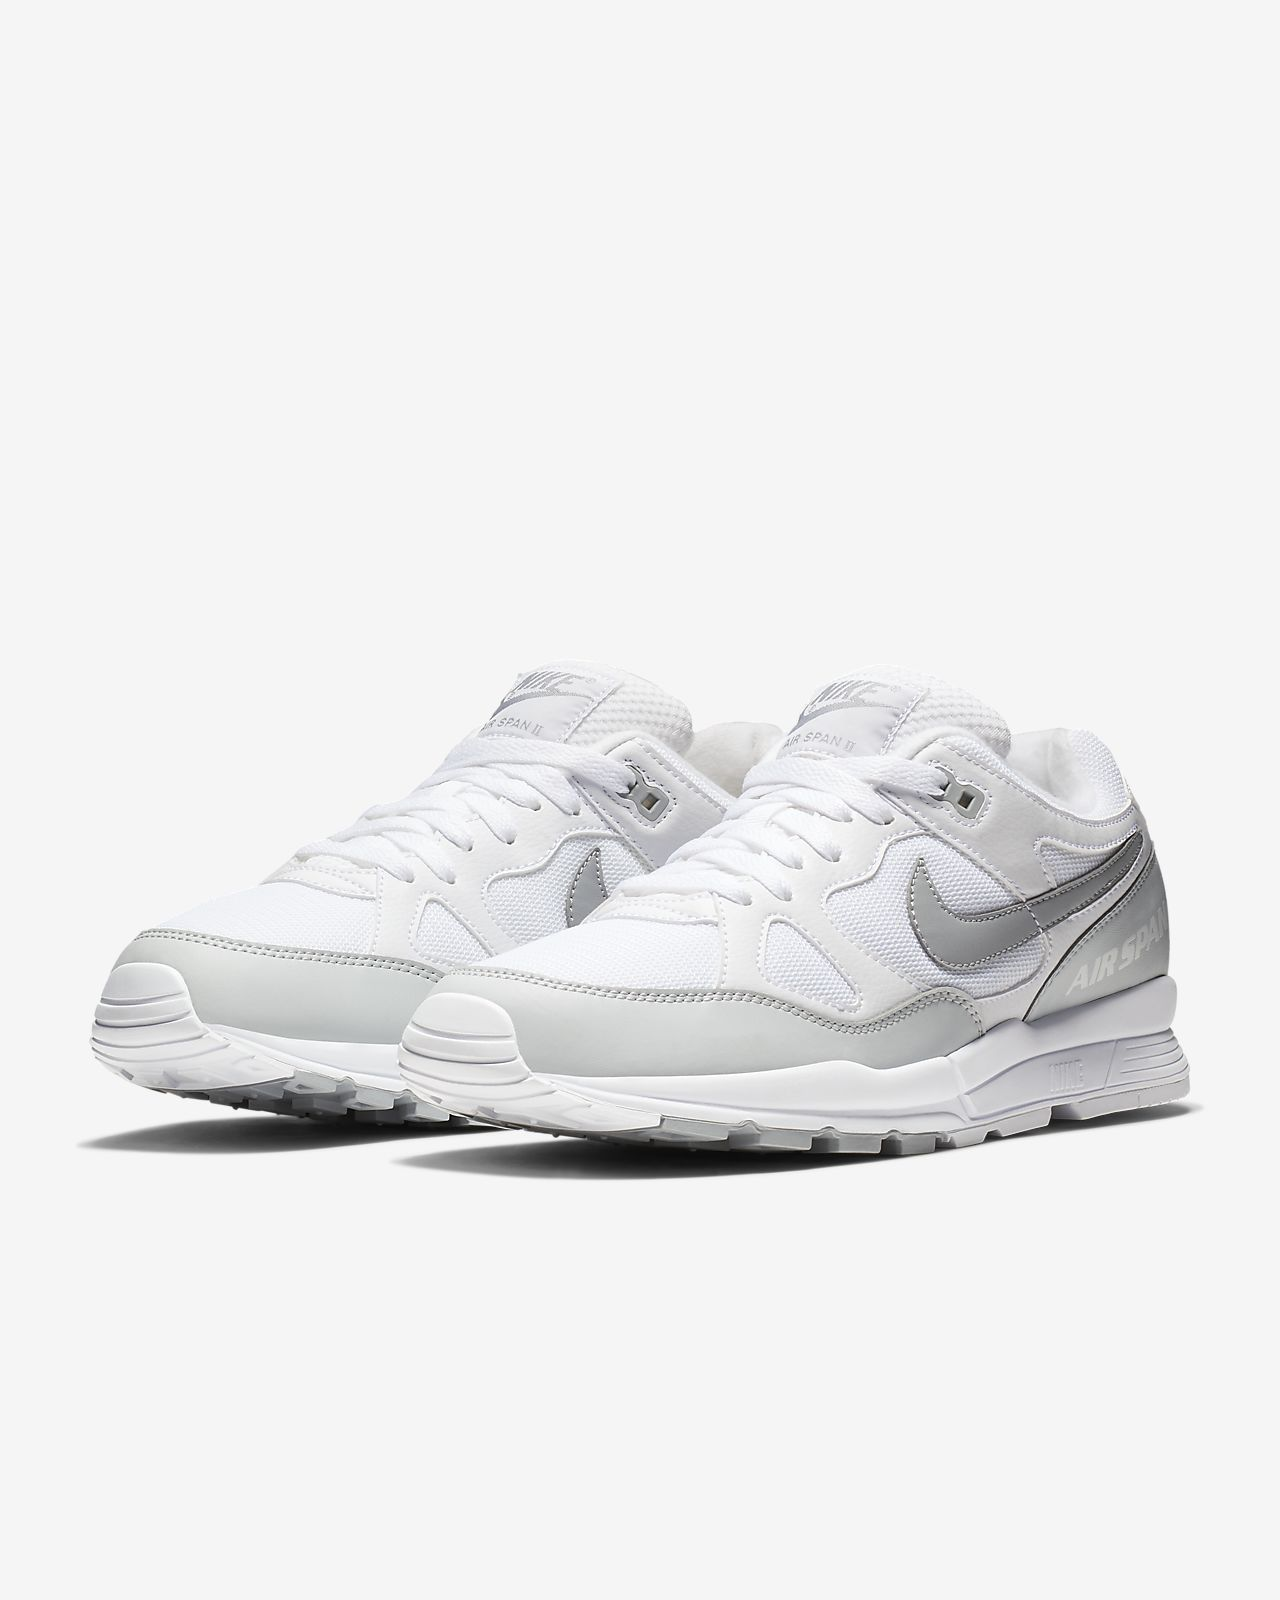 new arrival 6e7fc fefa8 ... Chaussure Nike Air Span II pour Homme